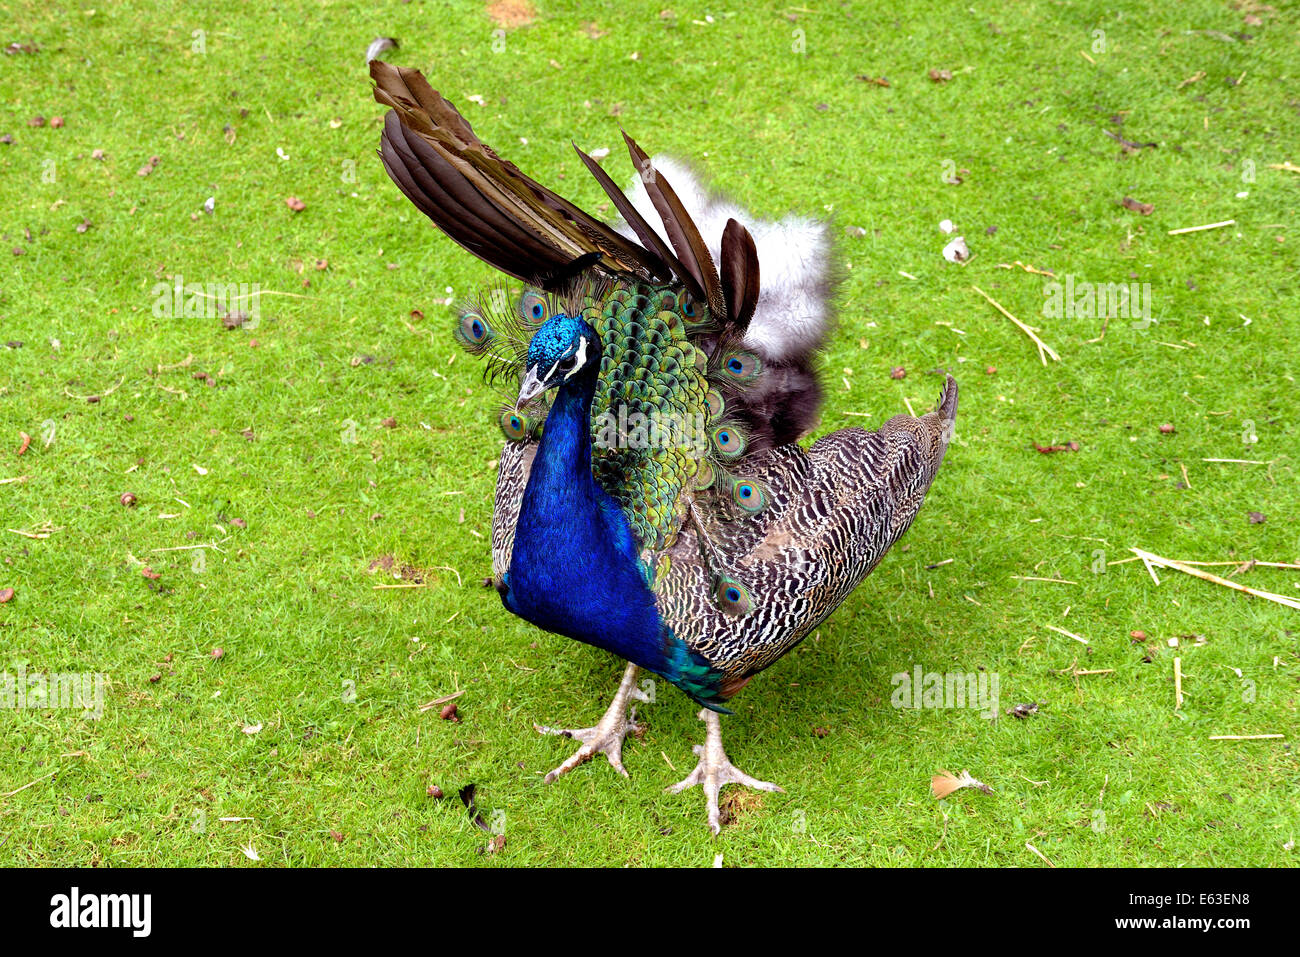 Peafowl are two Asiatic and one African species of flying bird in the genus Pavo of the pheasant family, Phasianidae. - Stock Image